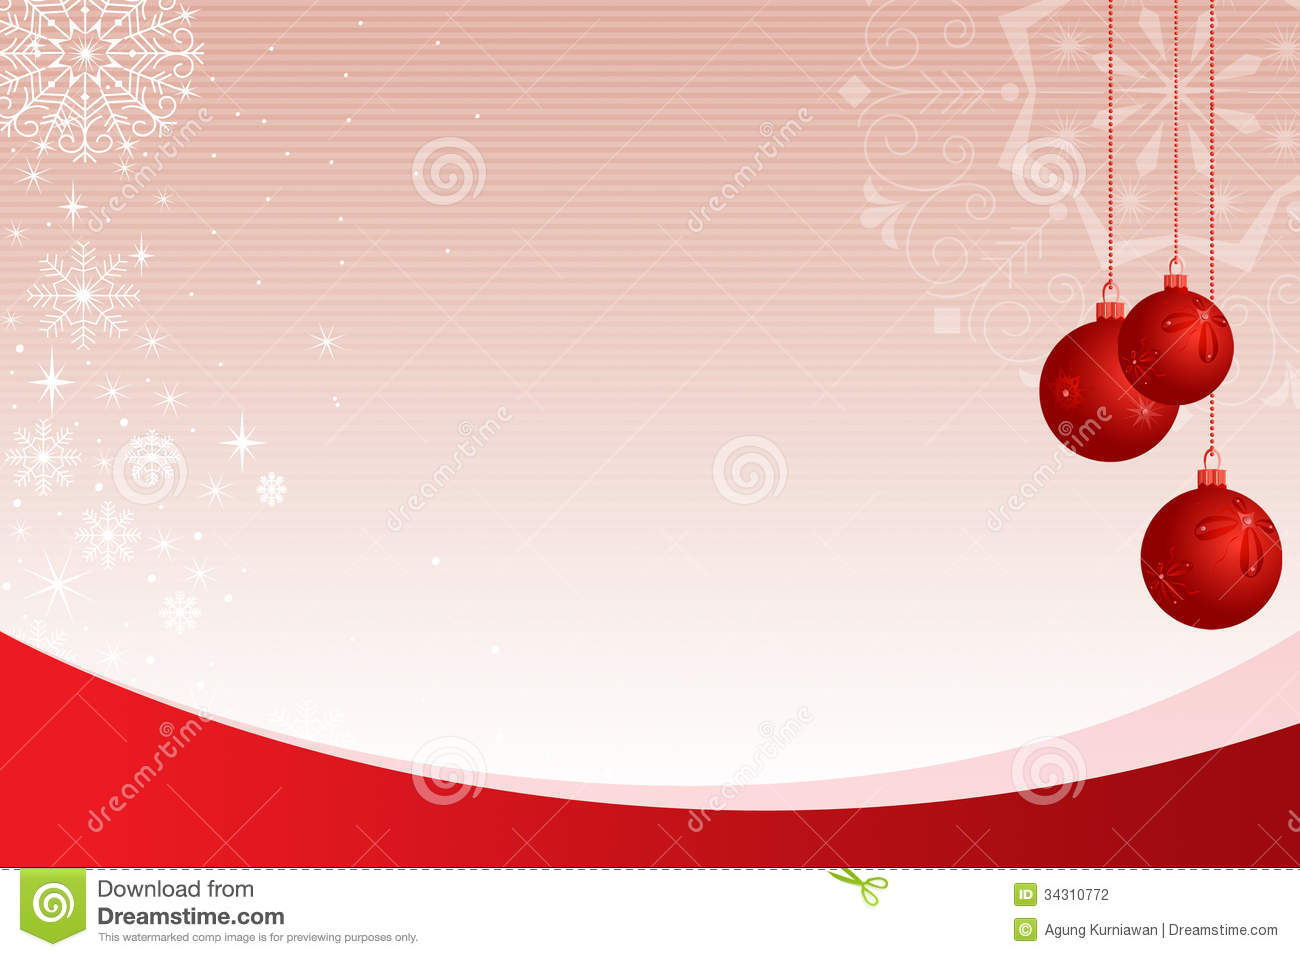 background images for birthday greetings ; red-bubbles-onamental-image-1